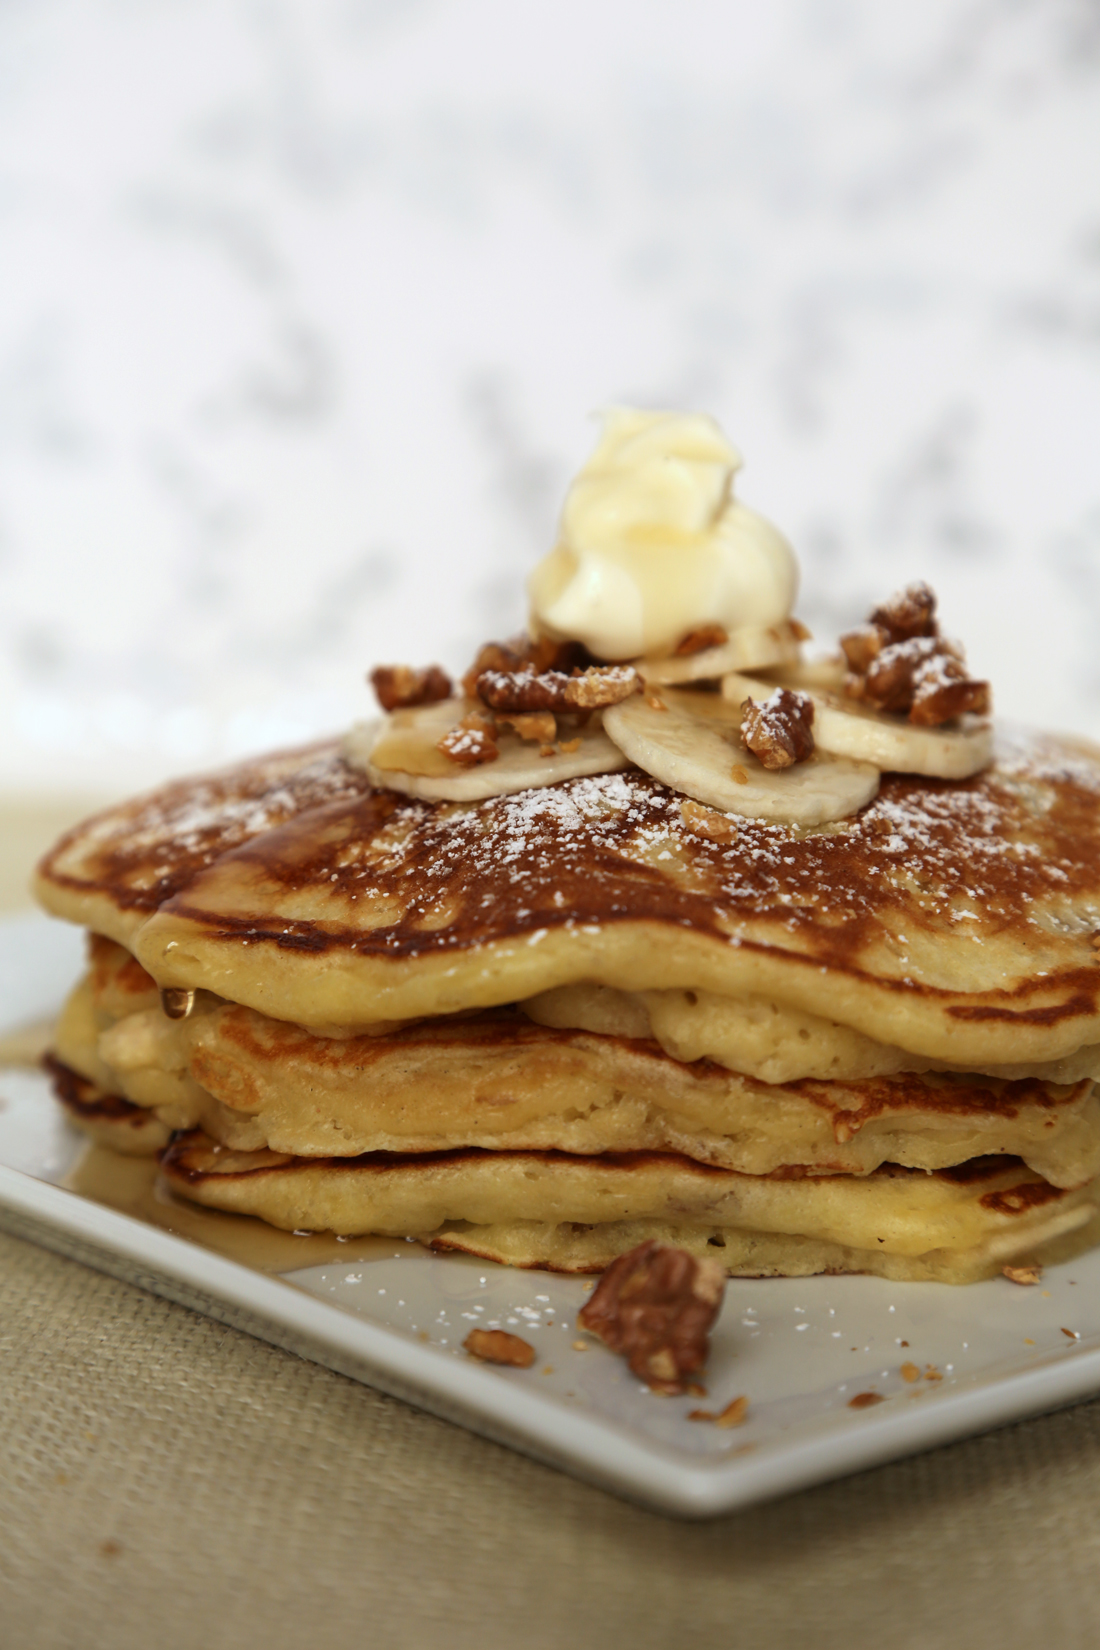 moist, with a nice crunch from the walnuts, these banana nut pancakes ...